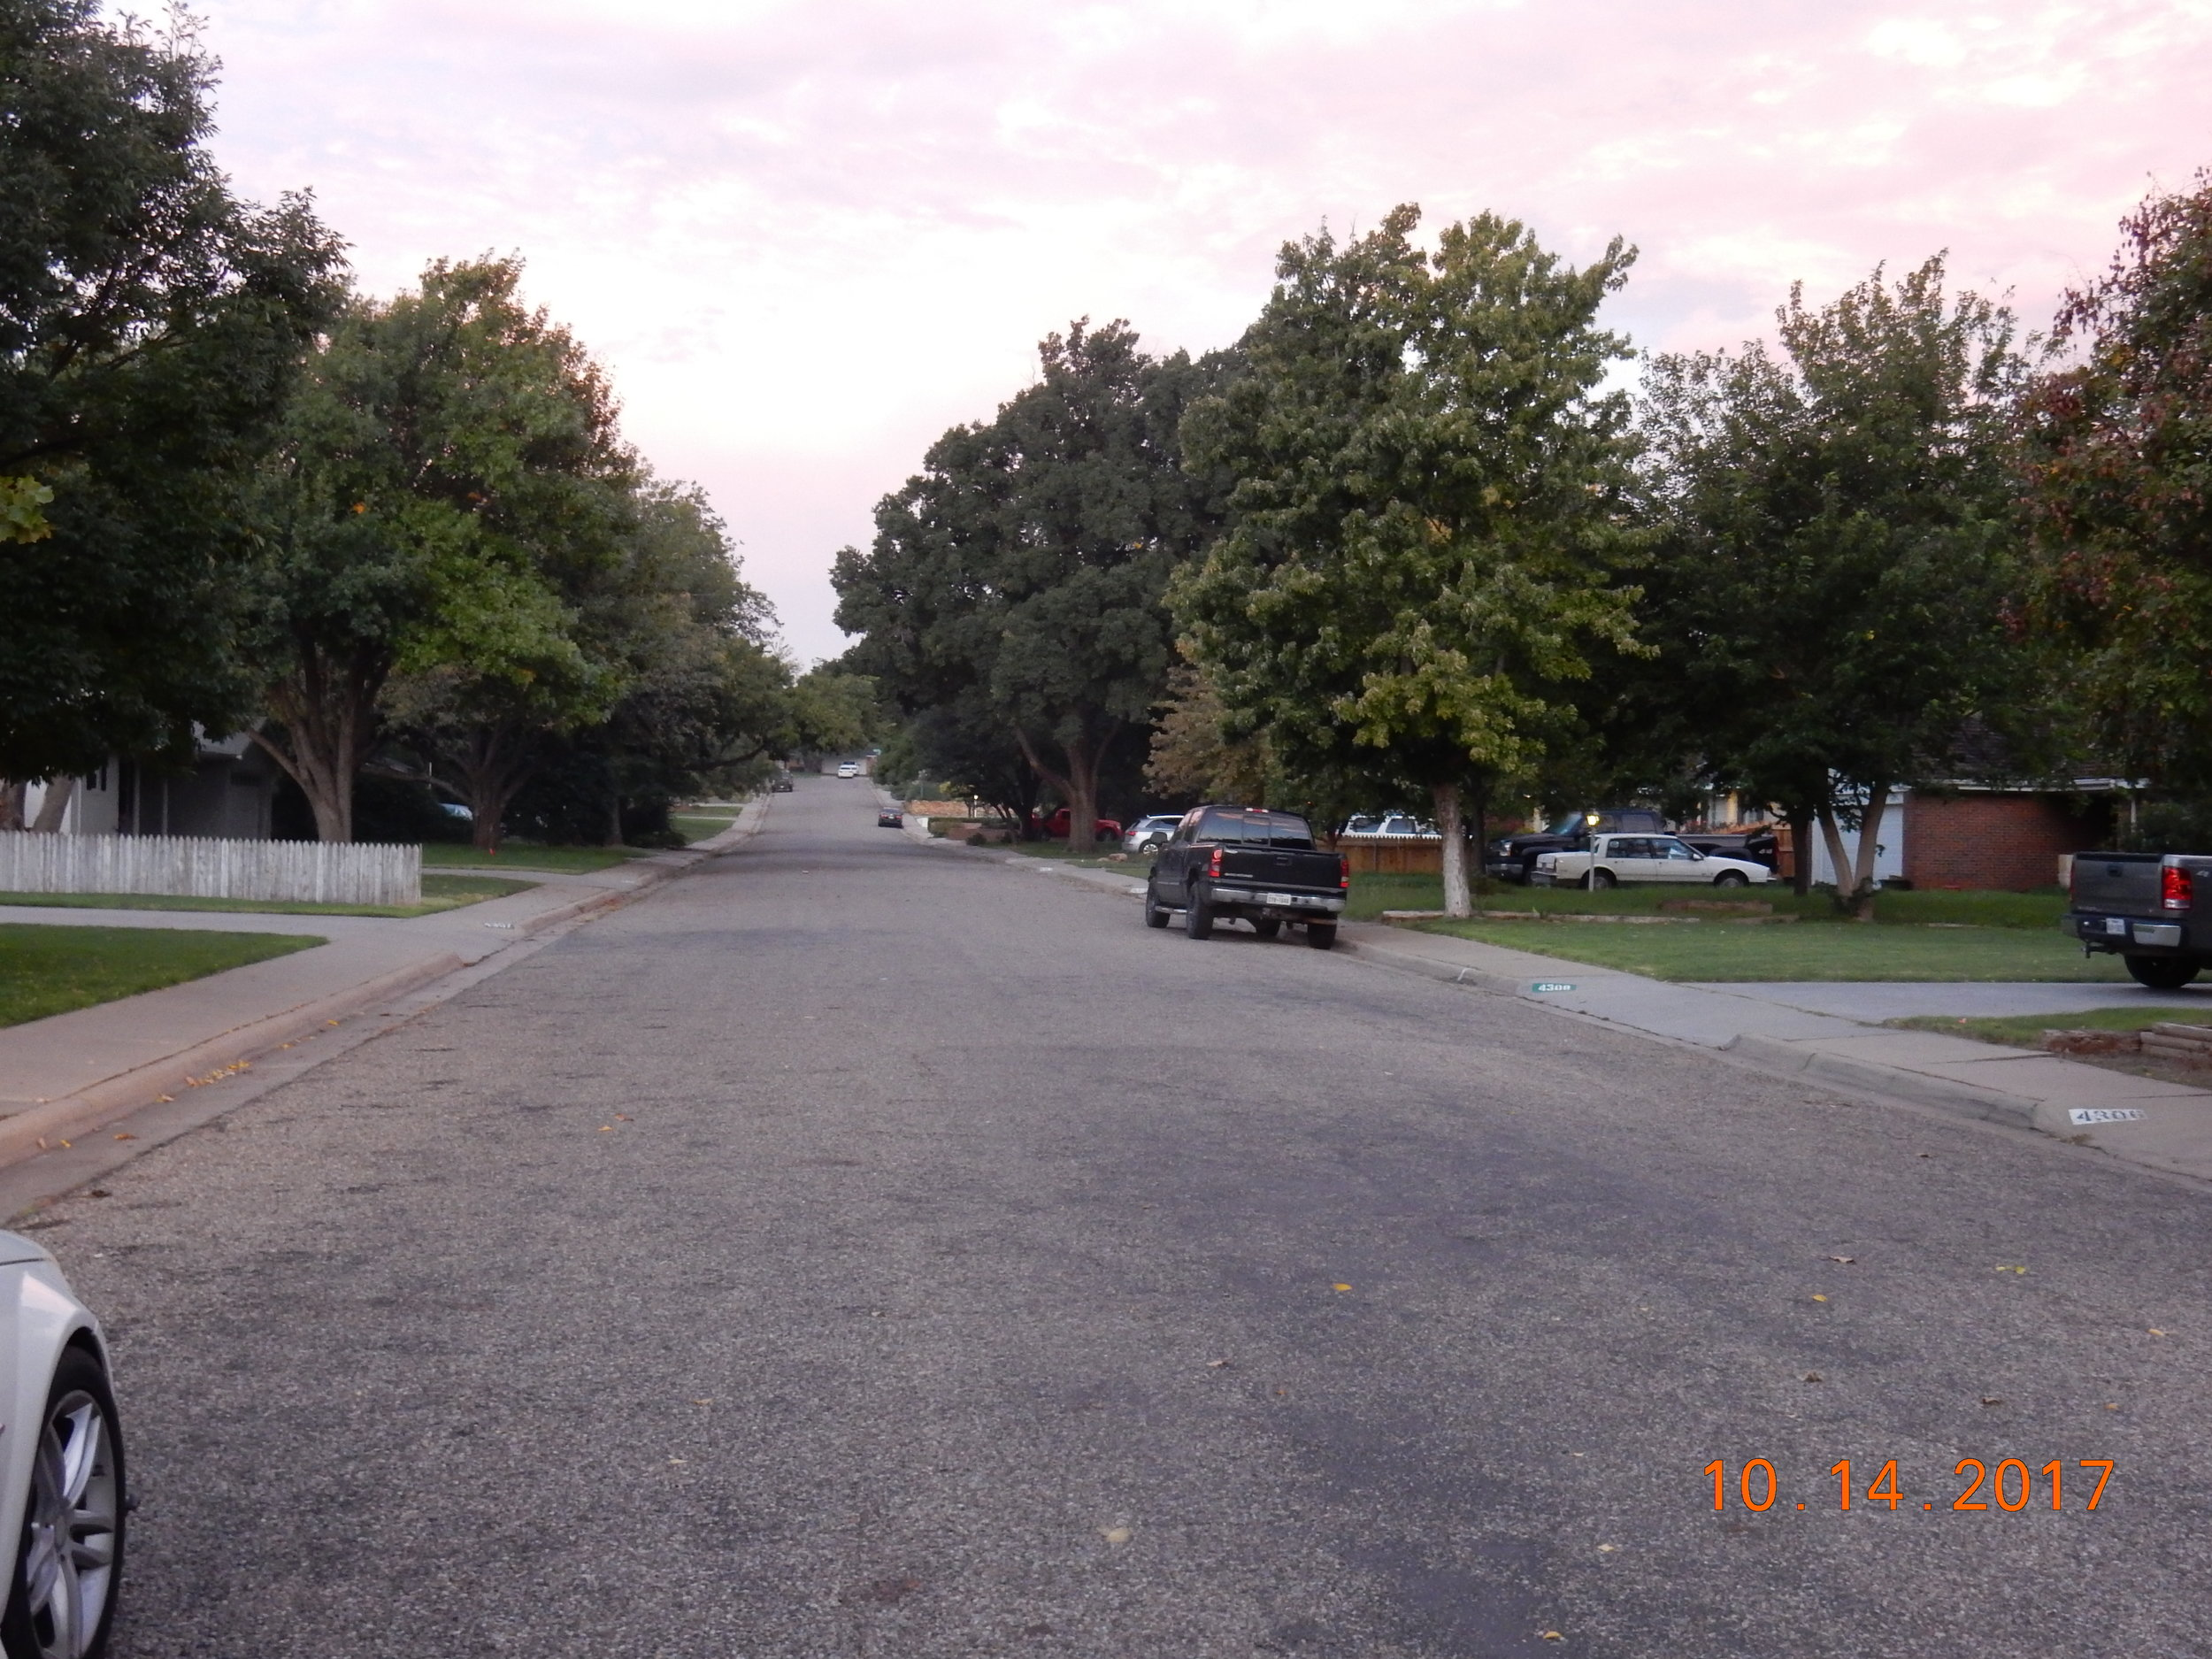 Another good thing that can be said about Amarillo is that it has nice broad streets.